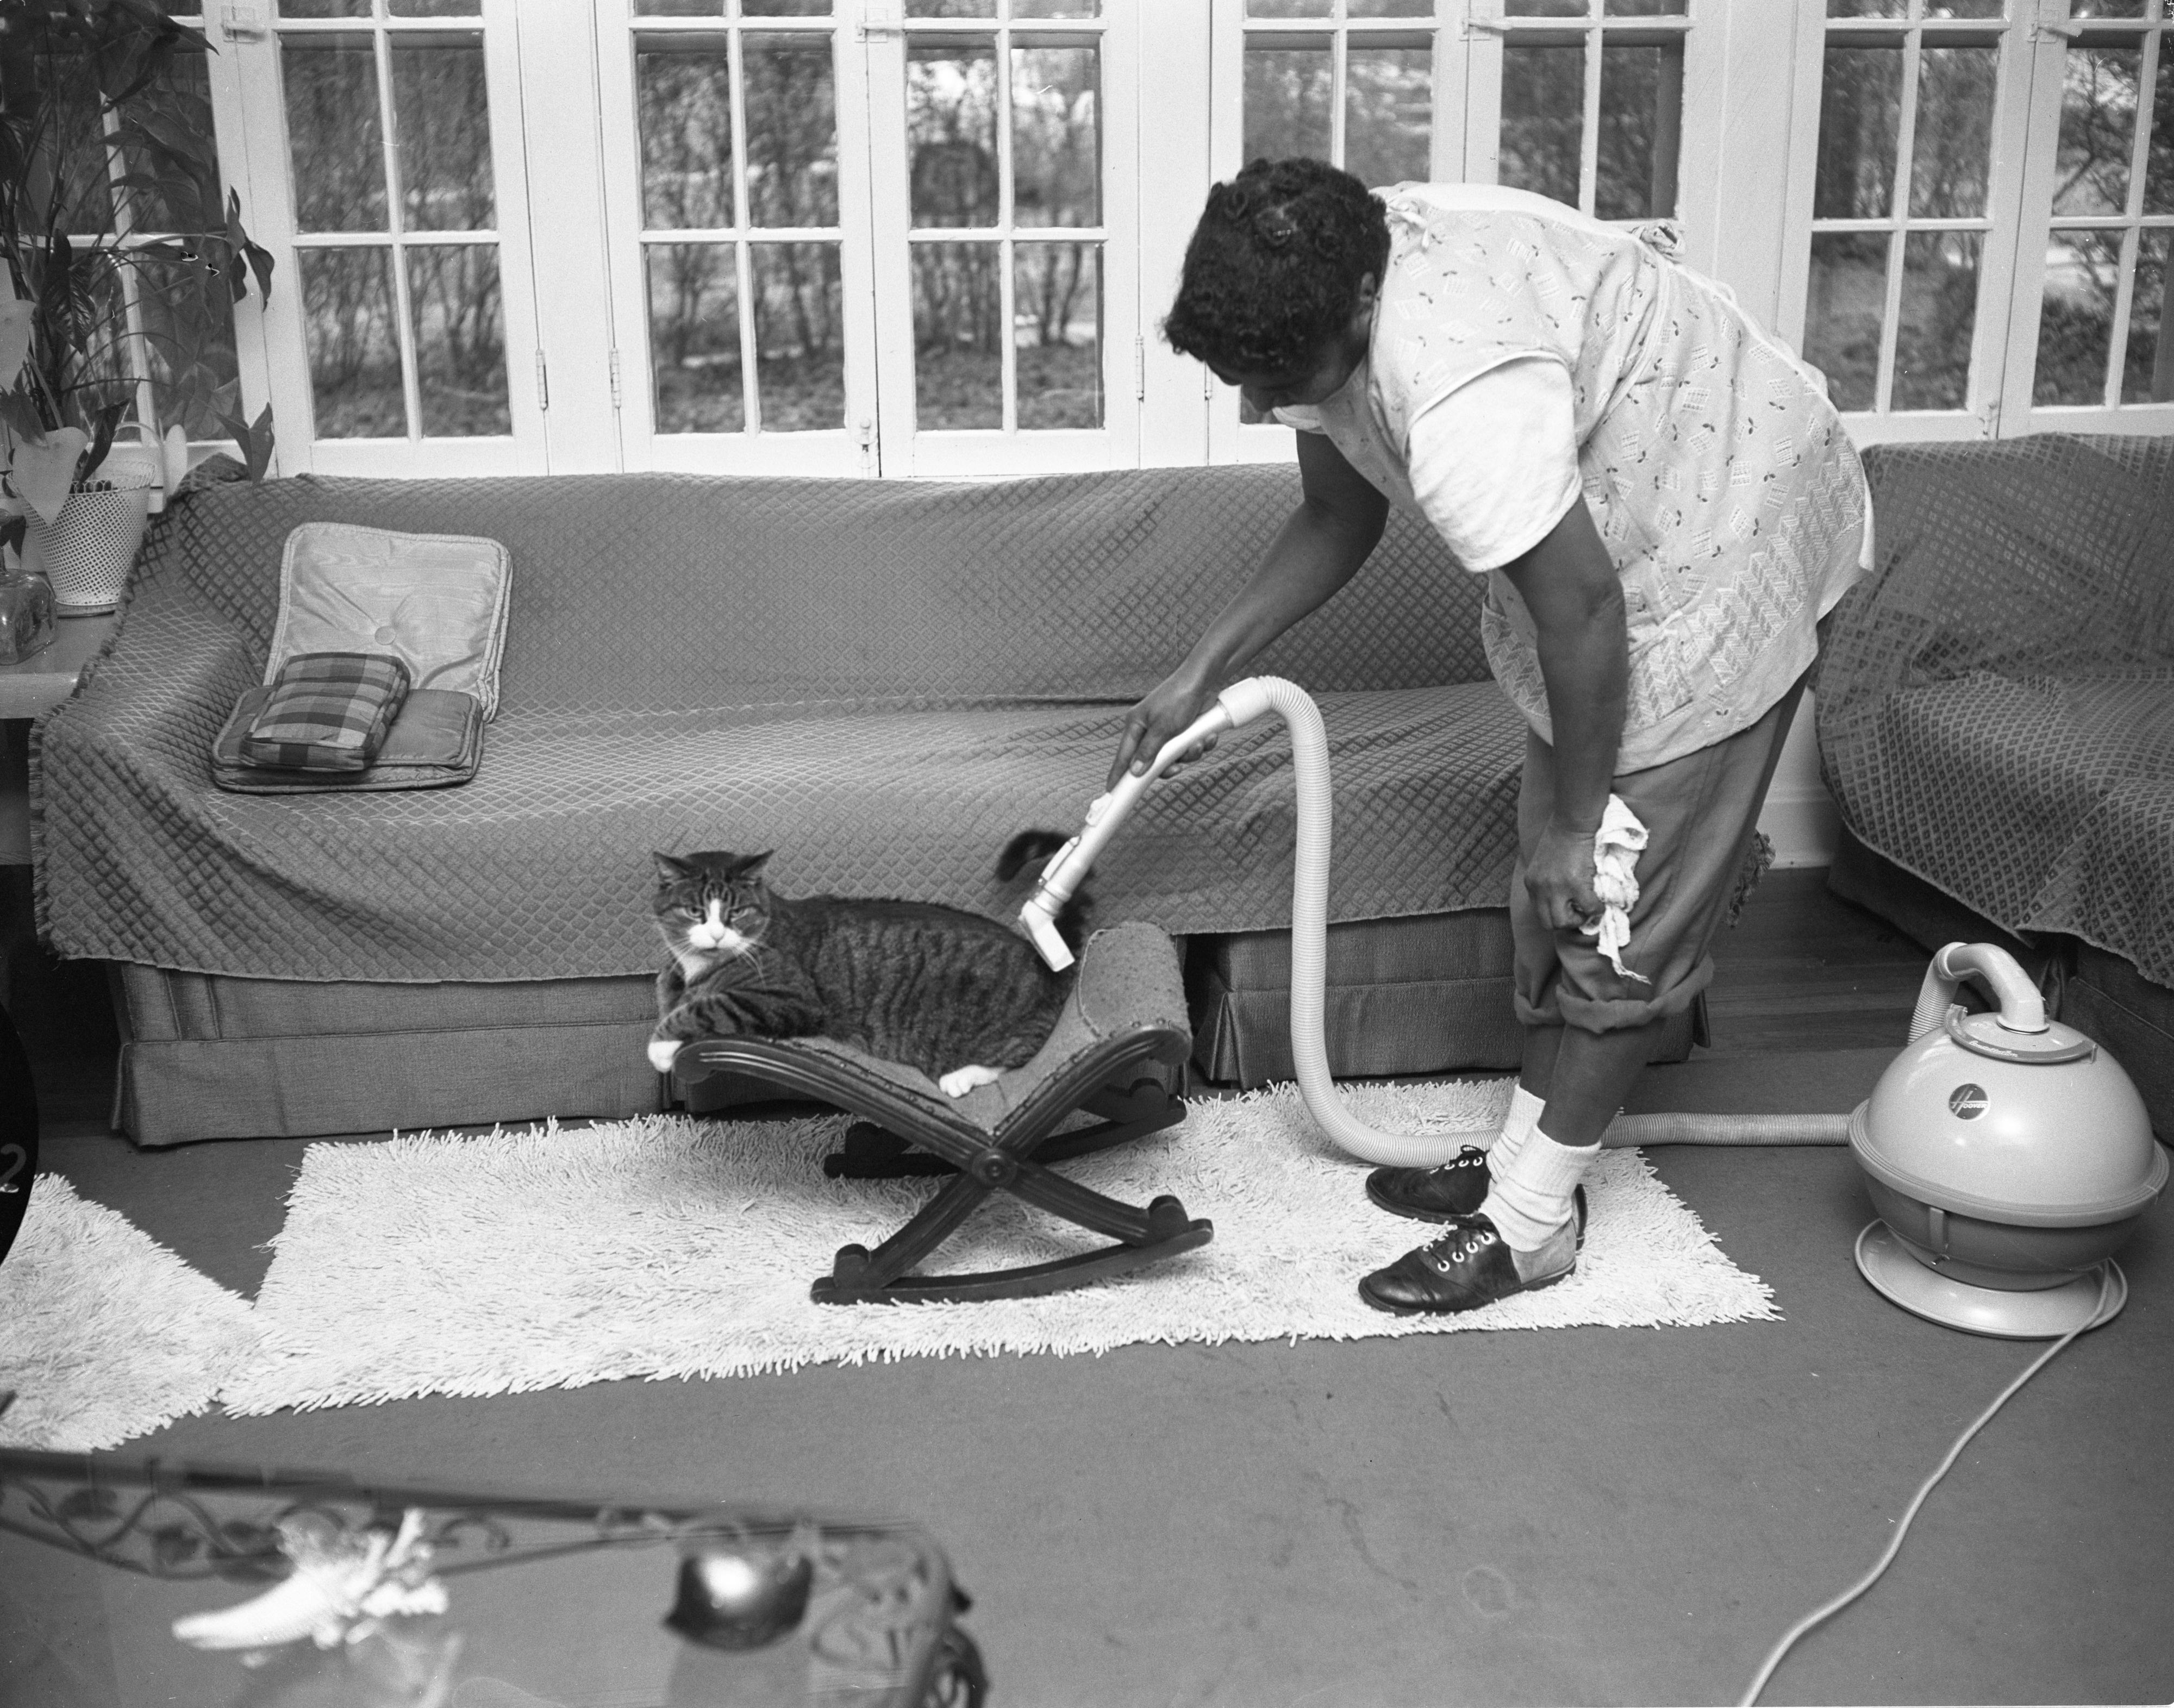 Mr. Buzzy Cleaned With Vacuum Cleaner, November 1958 image